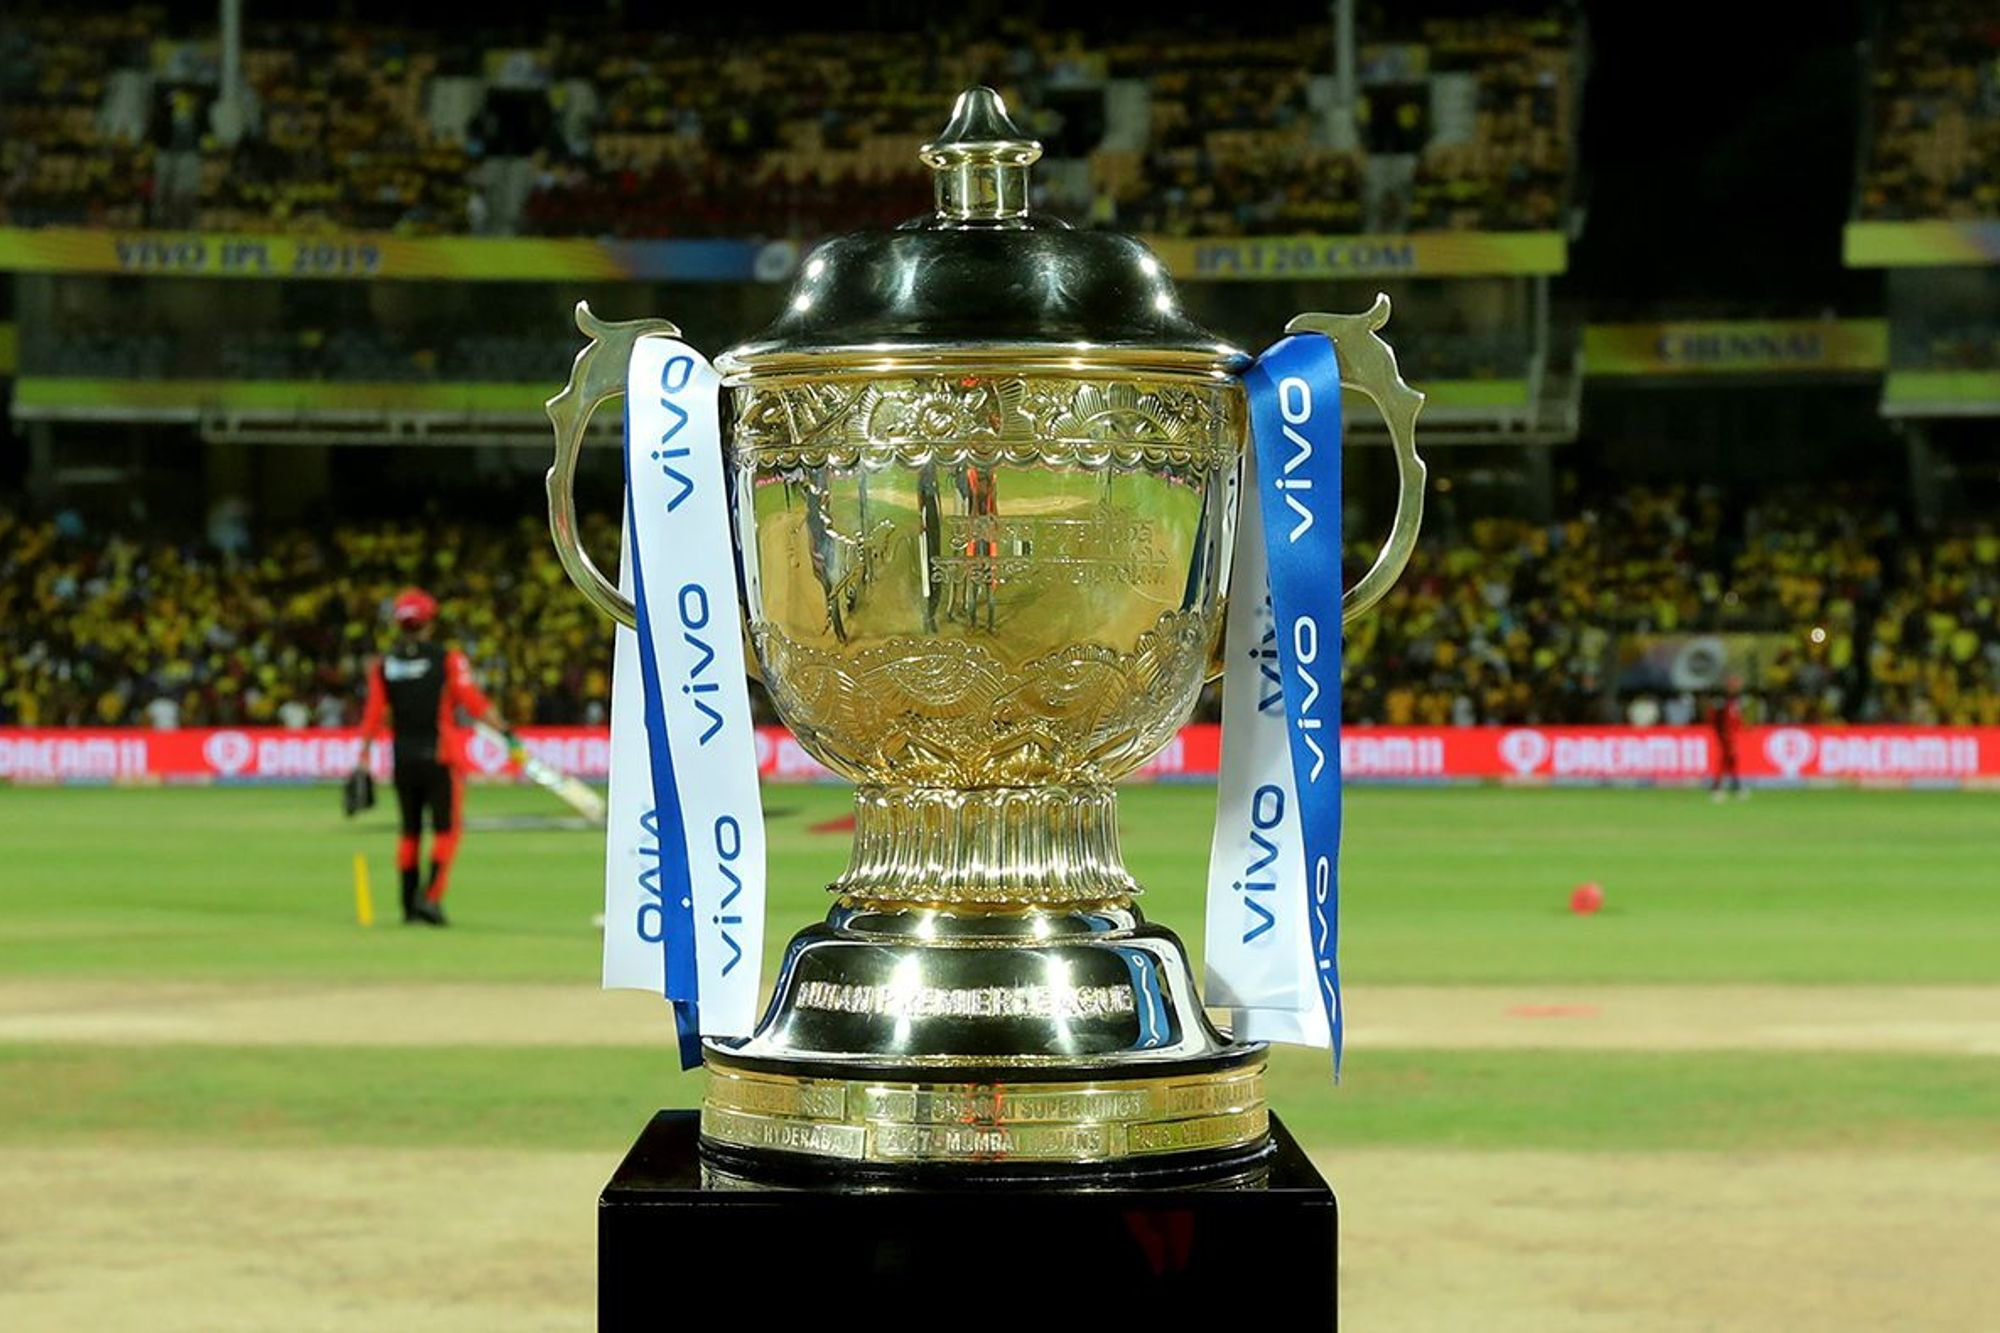 In case you have missed the remaining schedule for IPL 2020